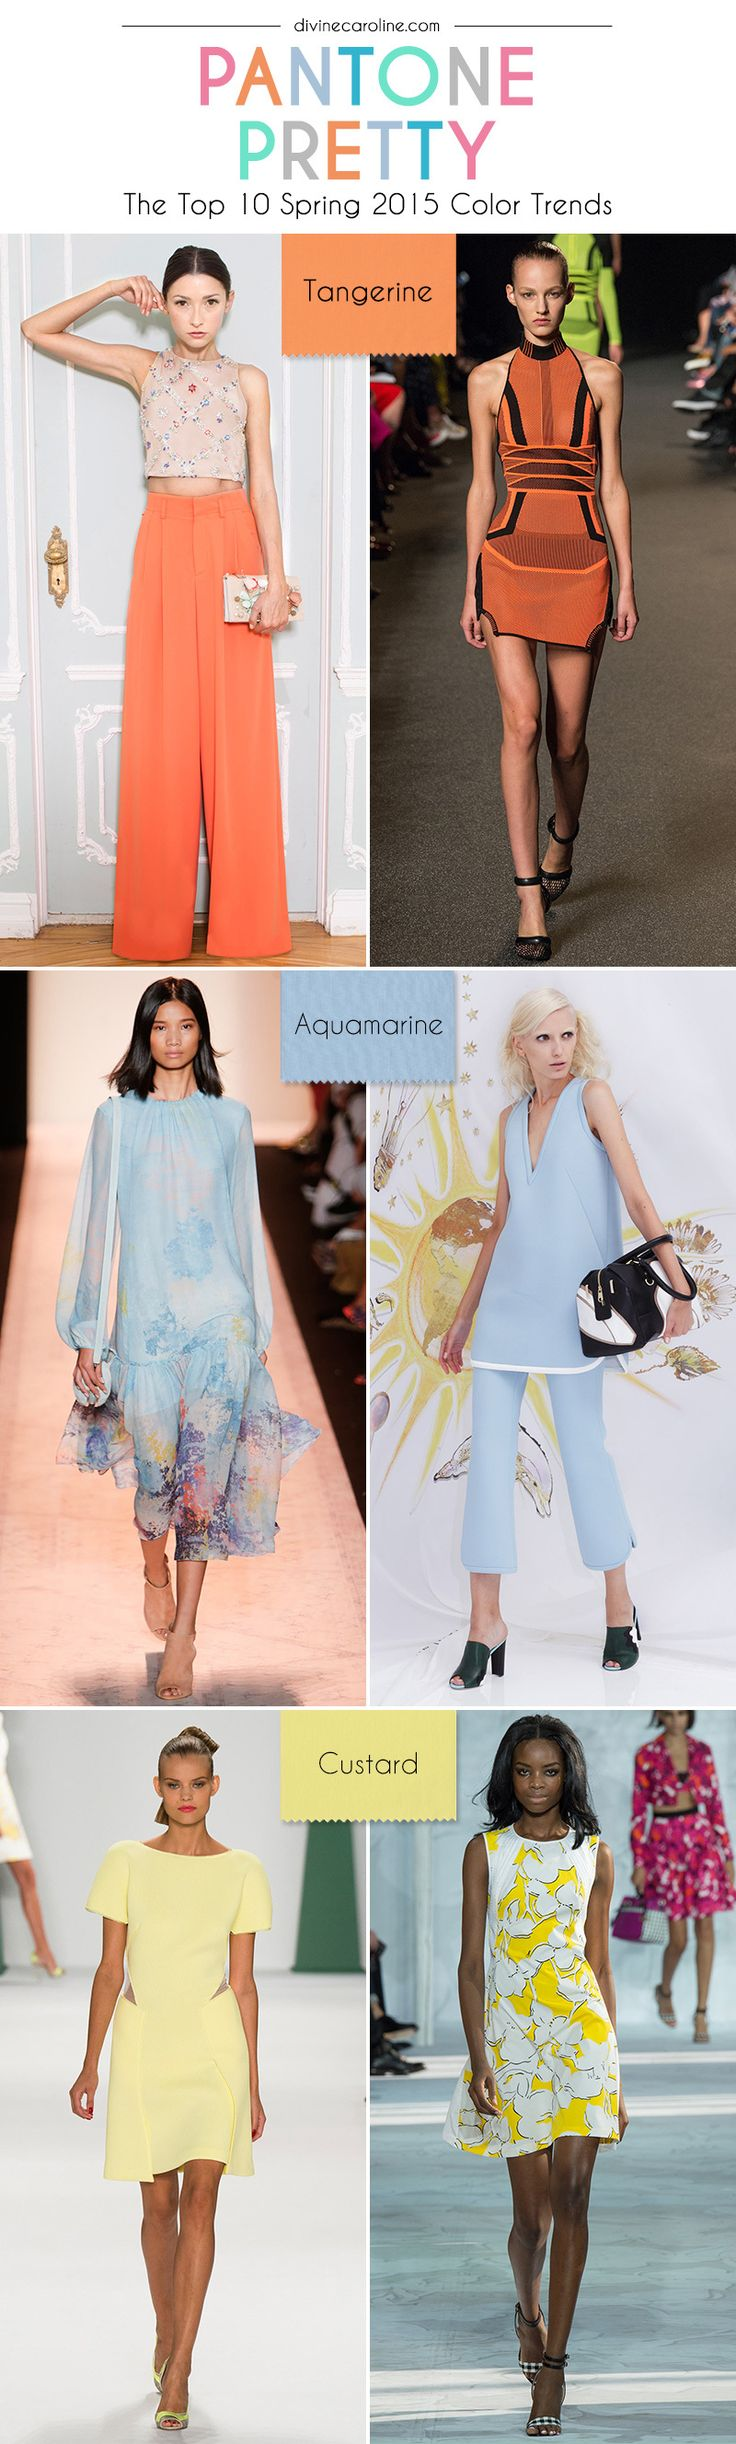 The spring 2015 Pantone color palette is here! Learn how to work the latest color trends into your everyday wardrobe. #Pantone #SpringTrends #ColorTrends